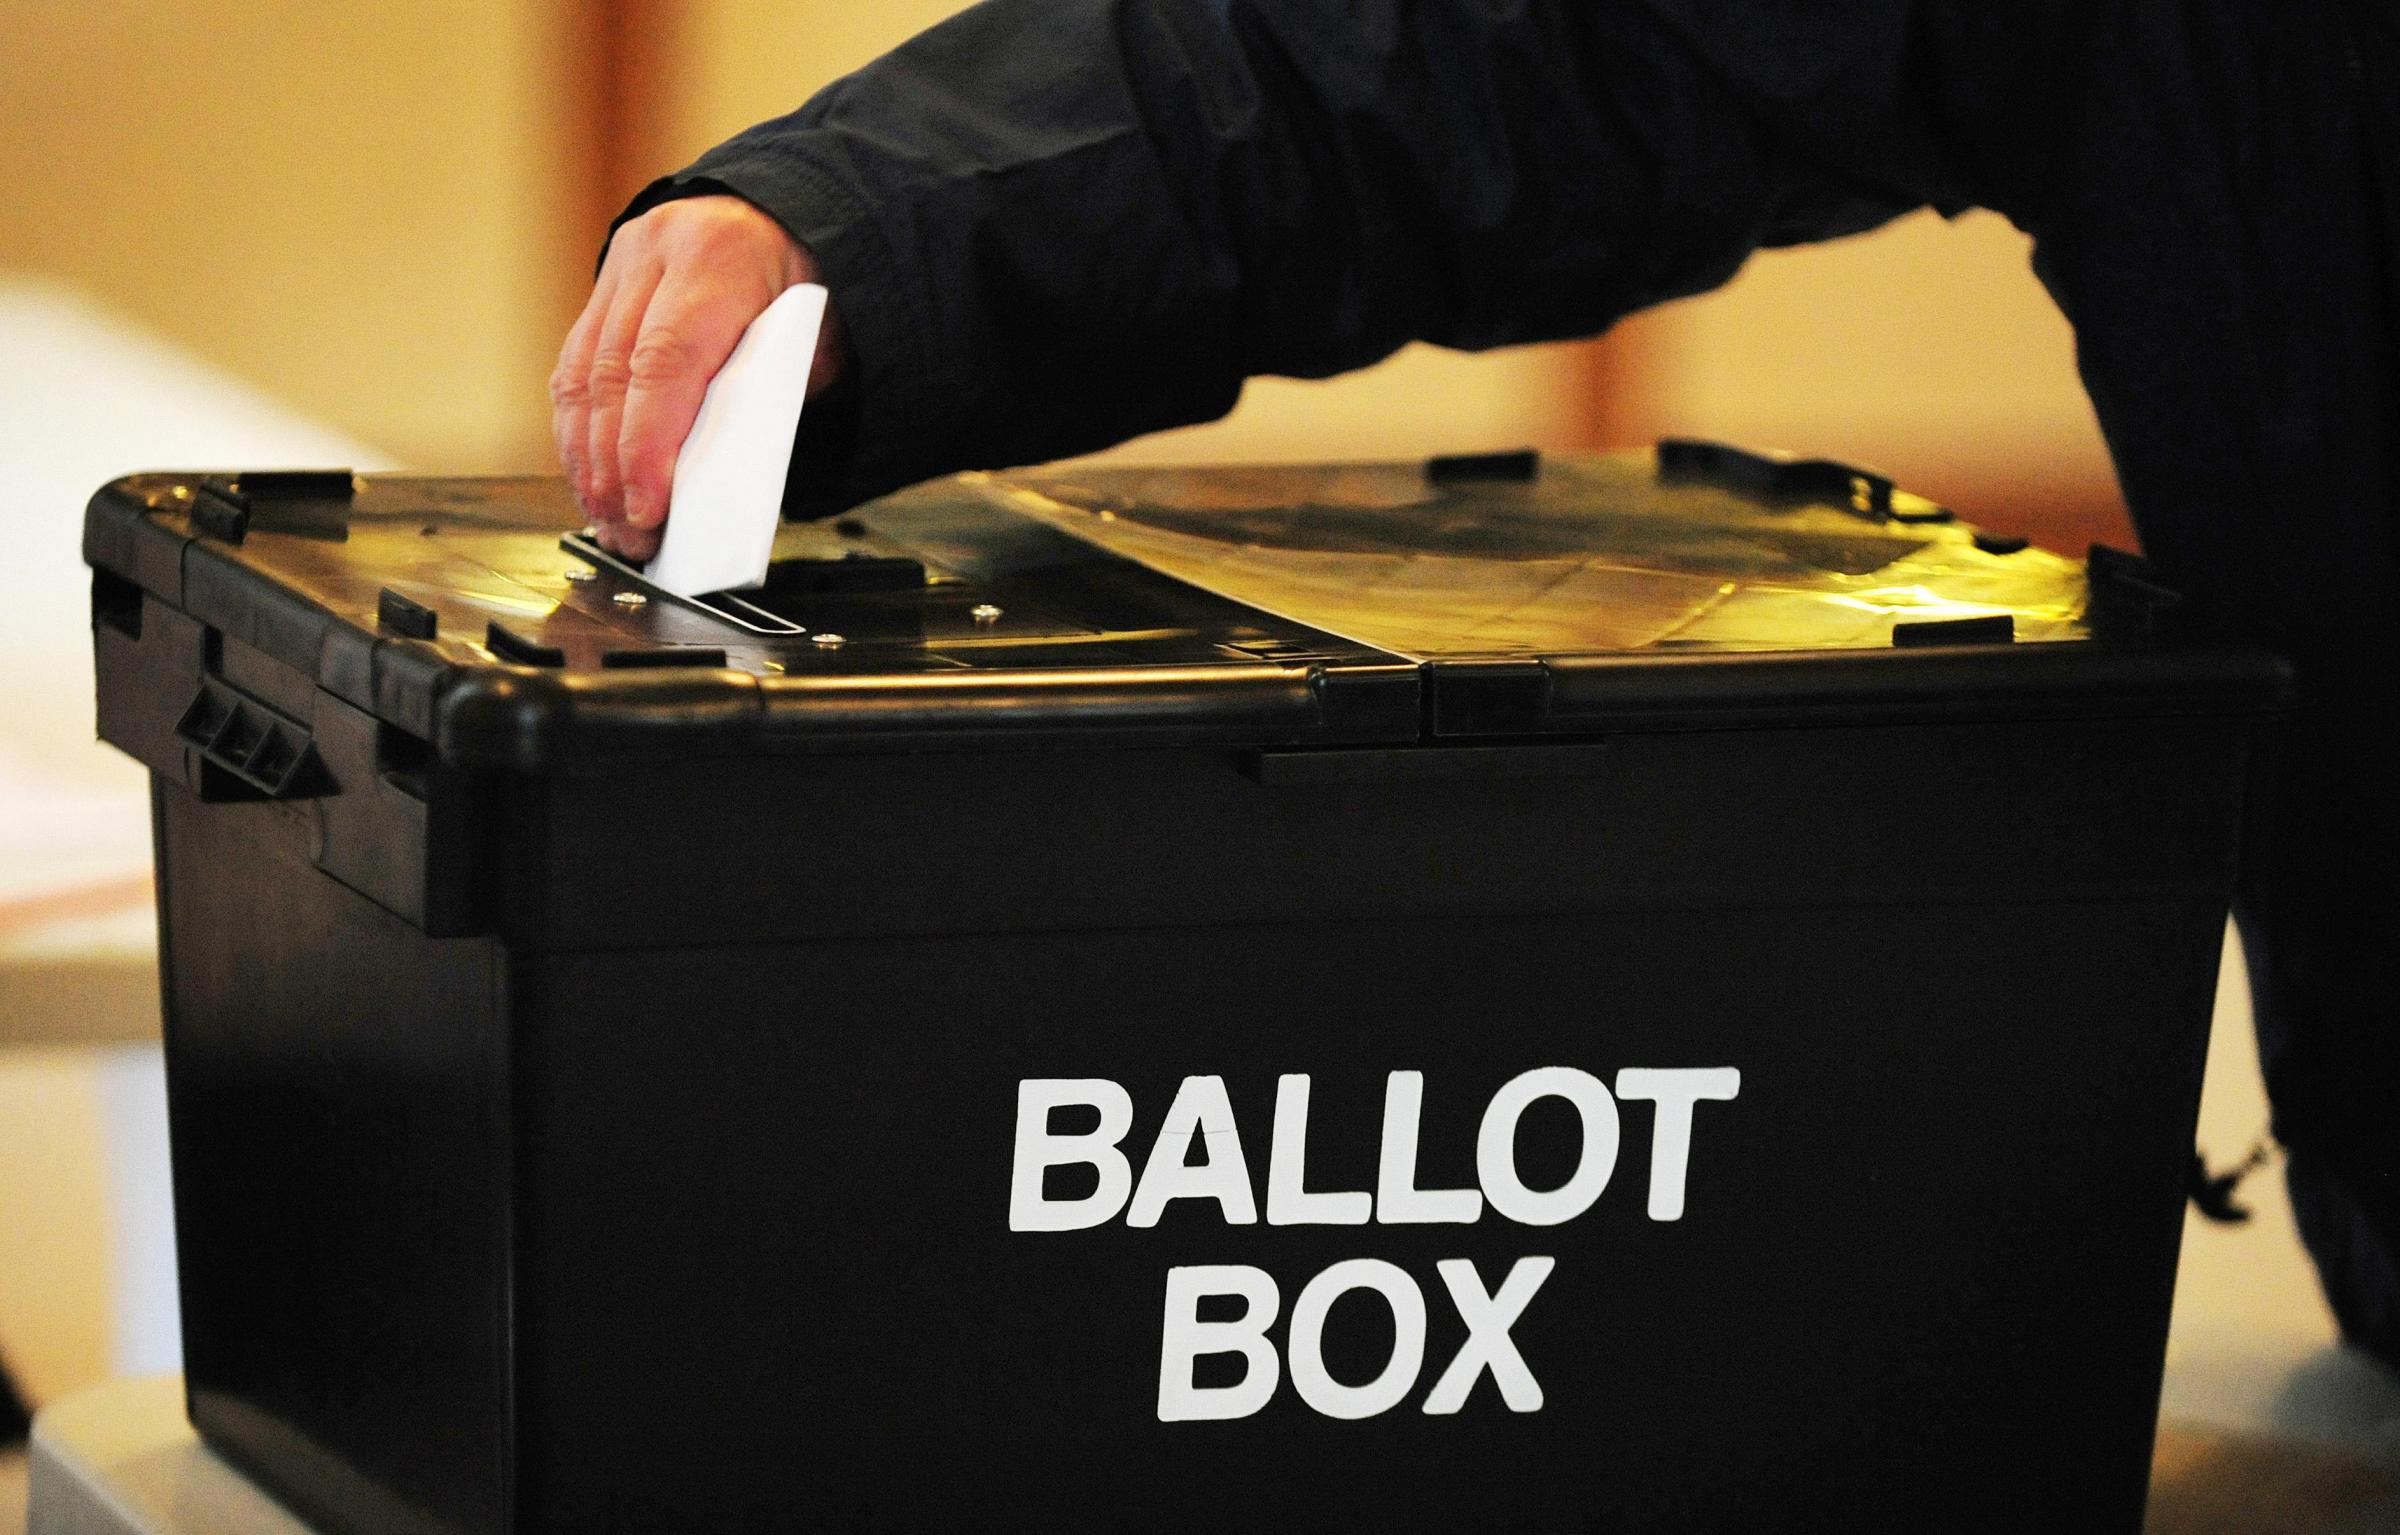 Voting in this year's Council elections takes place on Thursday May 3